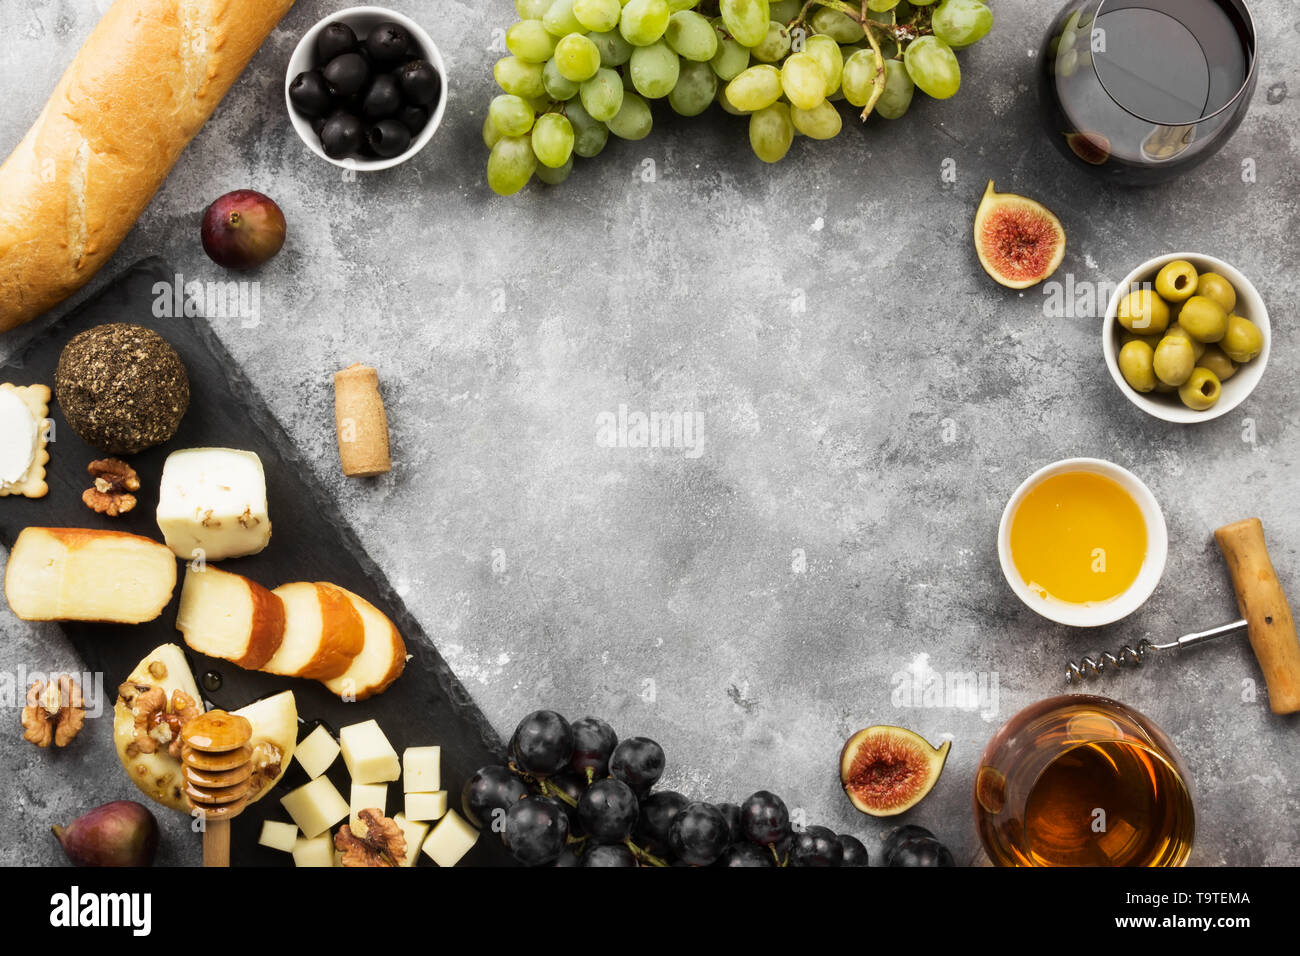 Snacks with wine - various types of cheeses, figs, nuts, honey, grapes, bread on a gray background. Top view, copy space. Food background Stock Photo